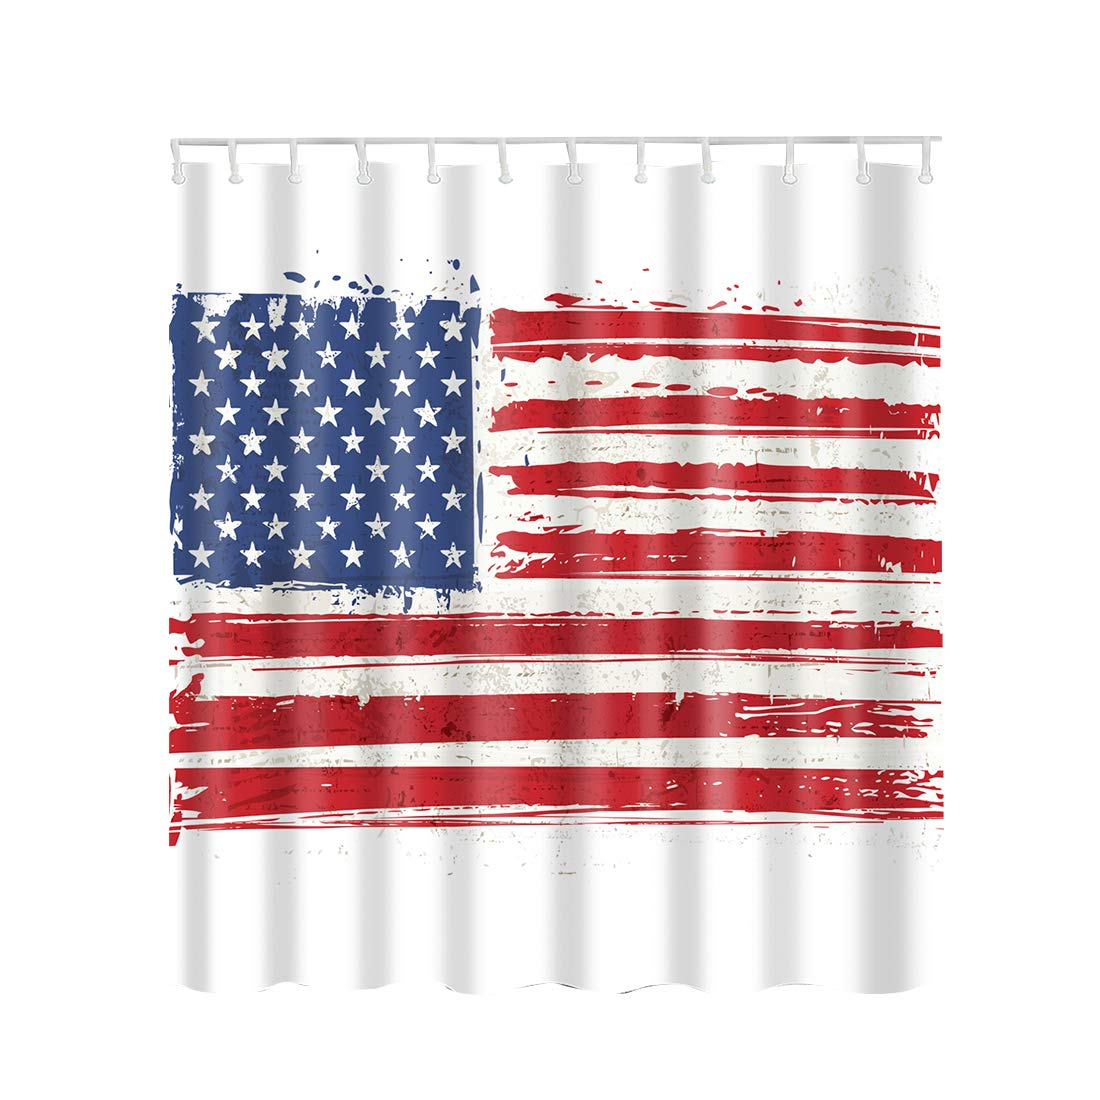 Alomoc Polyester Waterproof Shower Curtain Bathroom Decorations Set with 12 Hooks